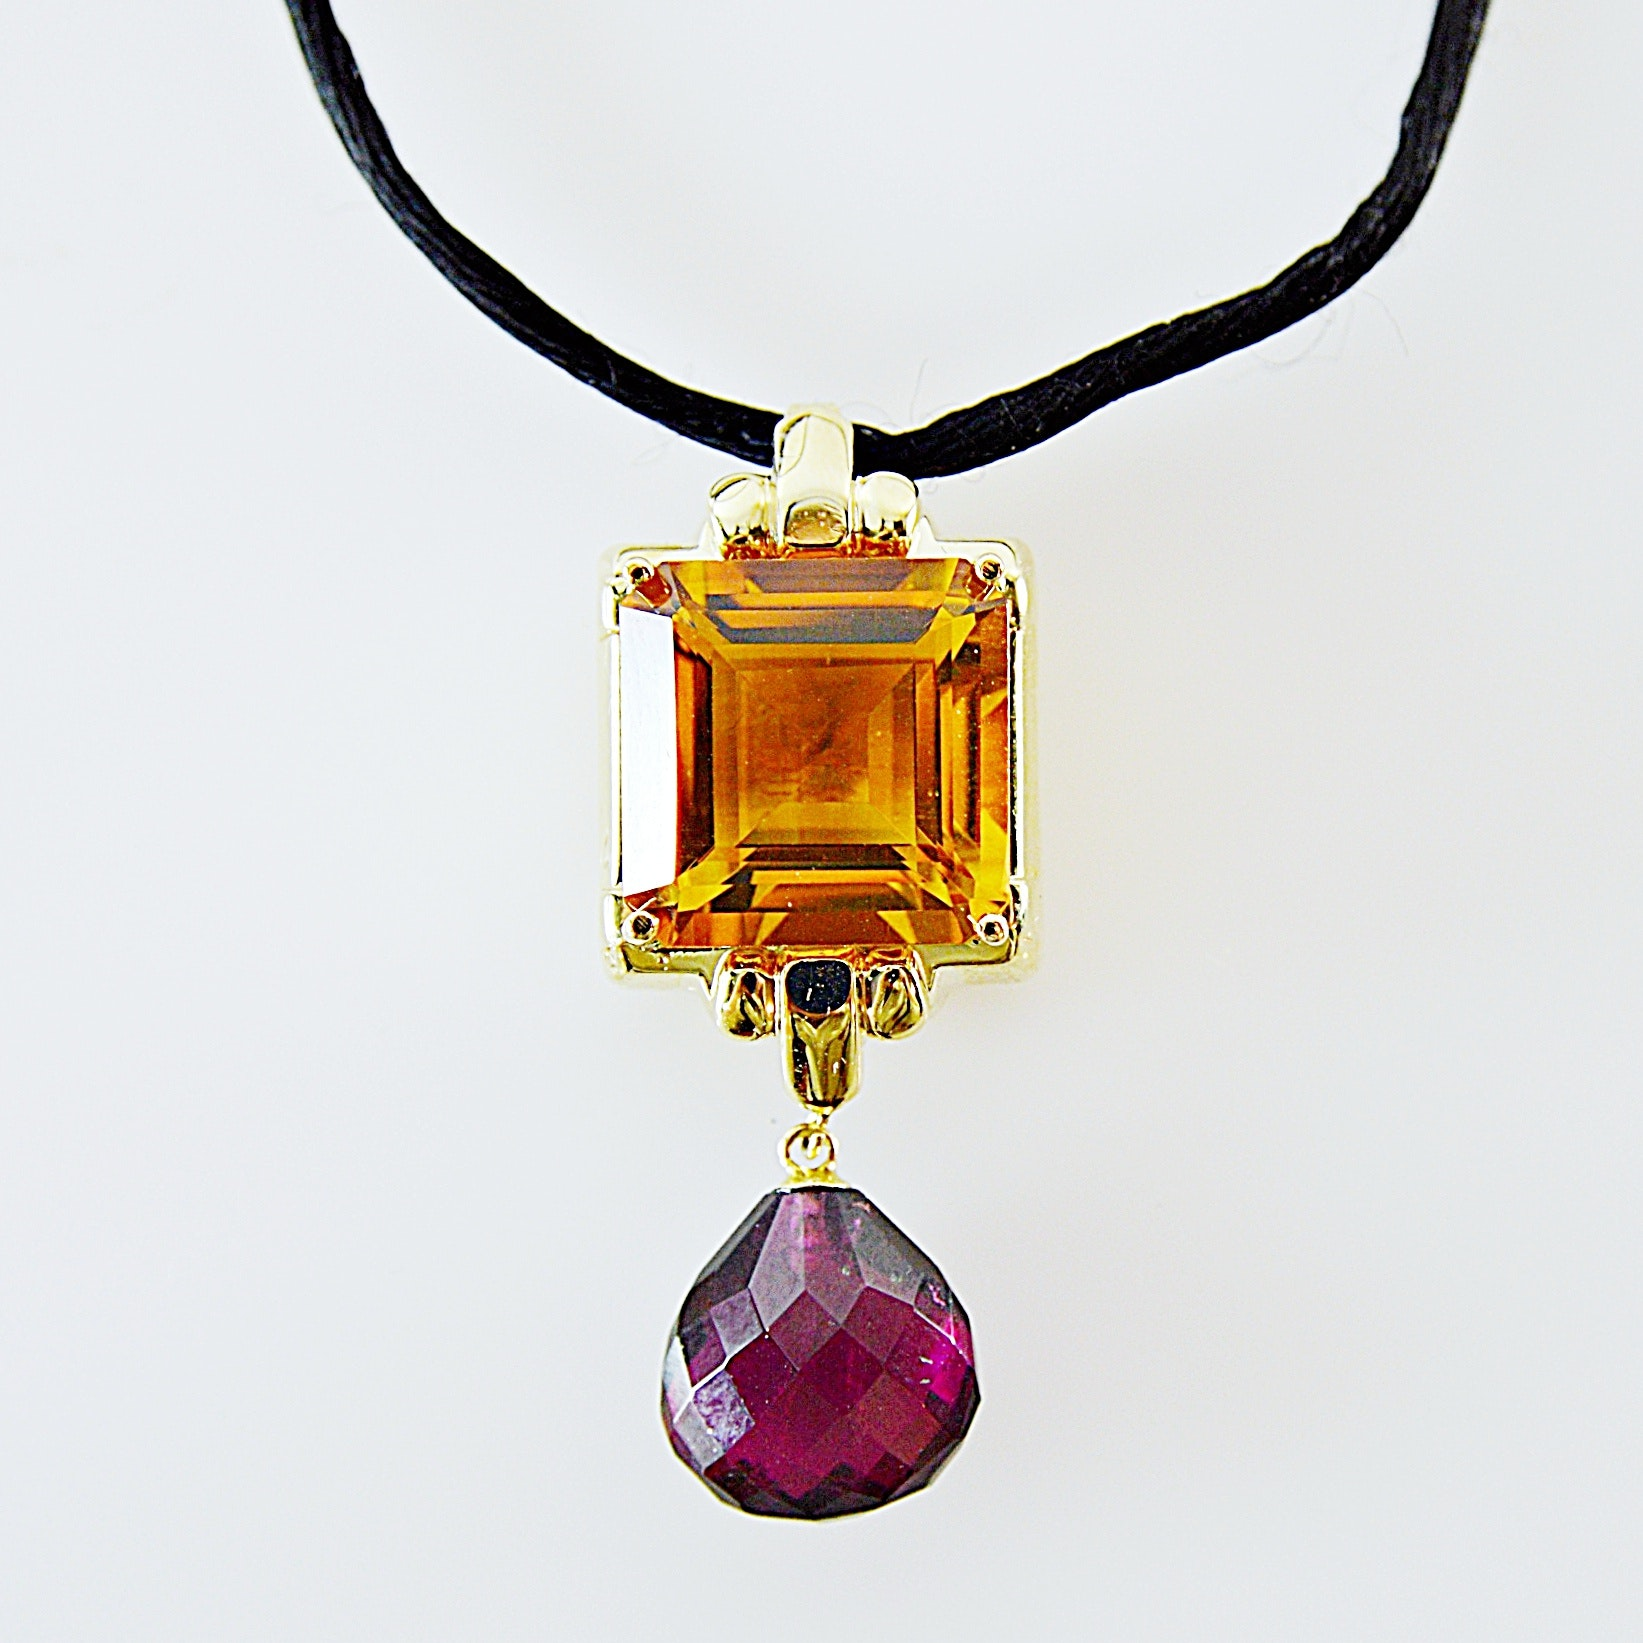 14K Gold, Citrine and Pink Tourmaline Pendant